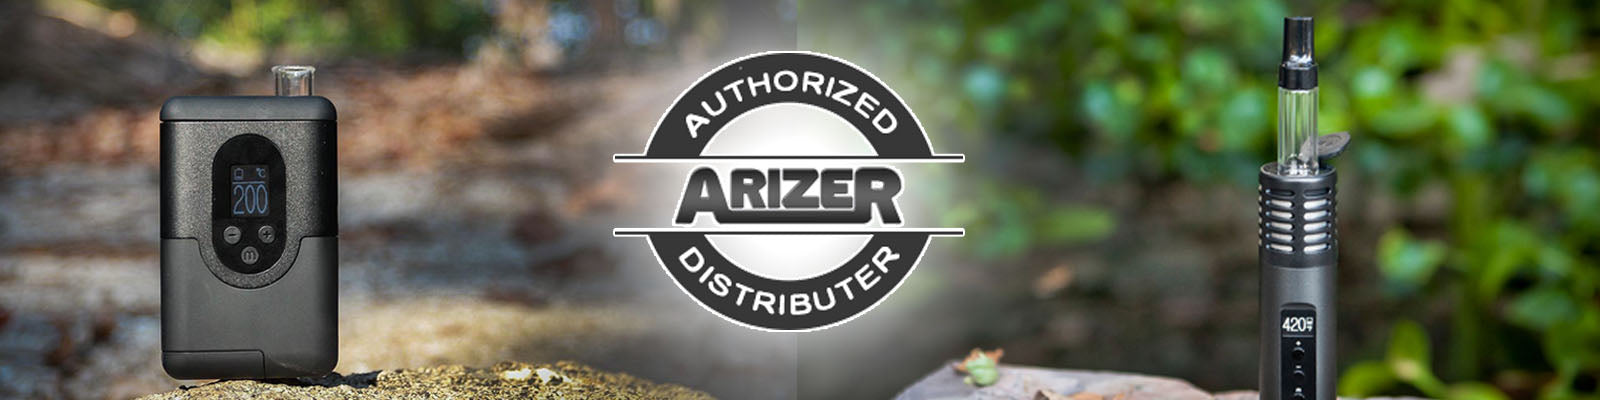 Arizer Vaporizers UK Authorized ReSeller Free Shipping